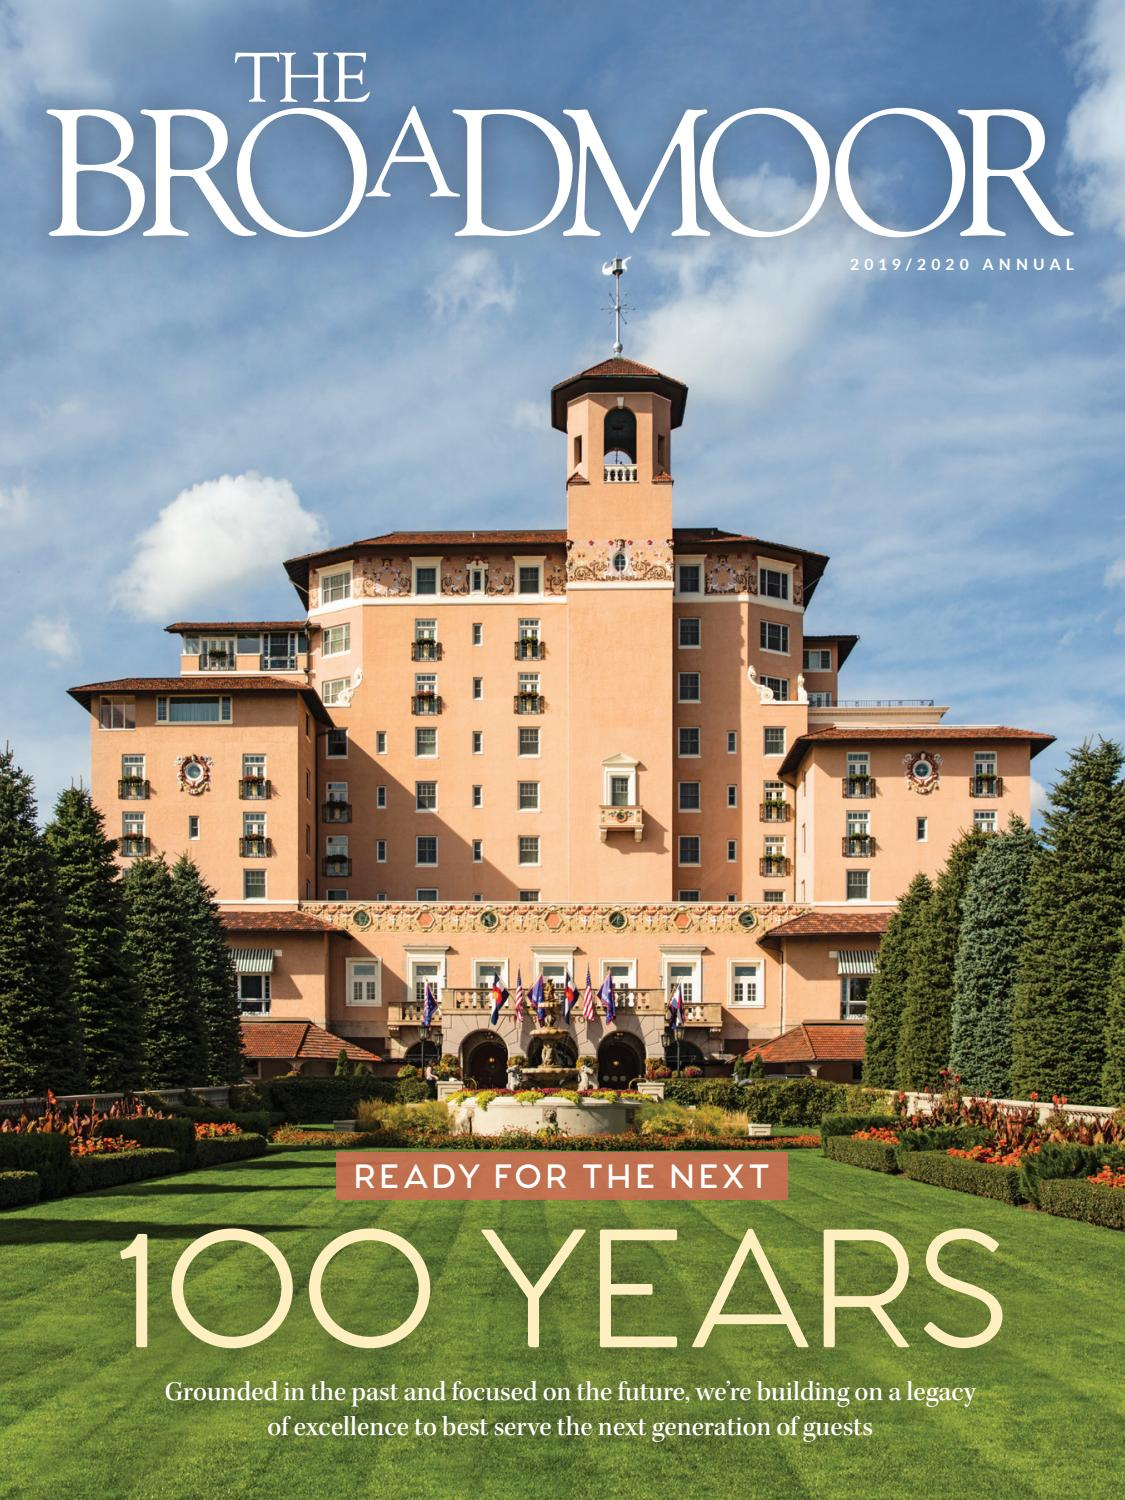 Christmas At The Broadmoor 2020 The Broadmoor Magazine 2019/2020 by Hungry Eye Media   issuu